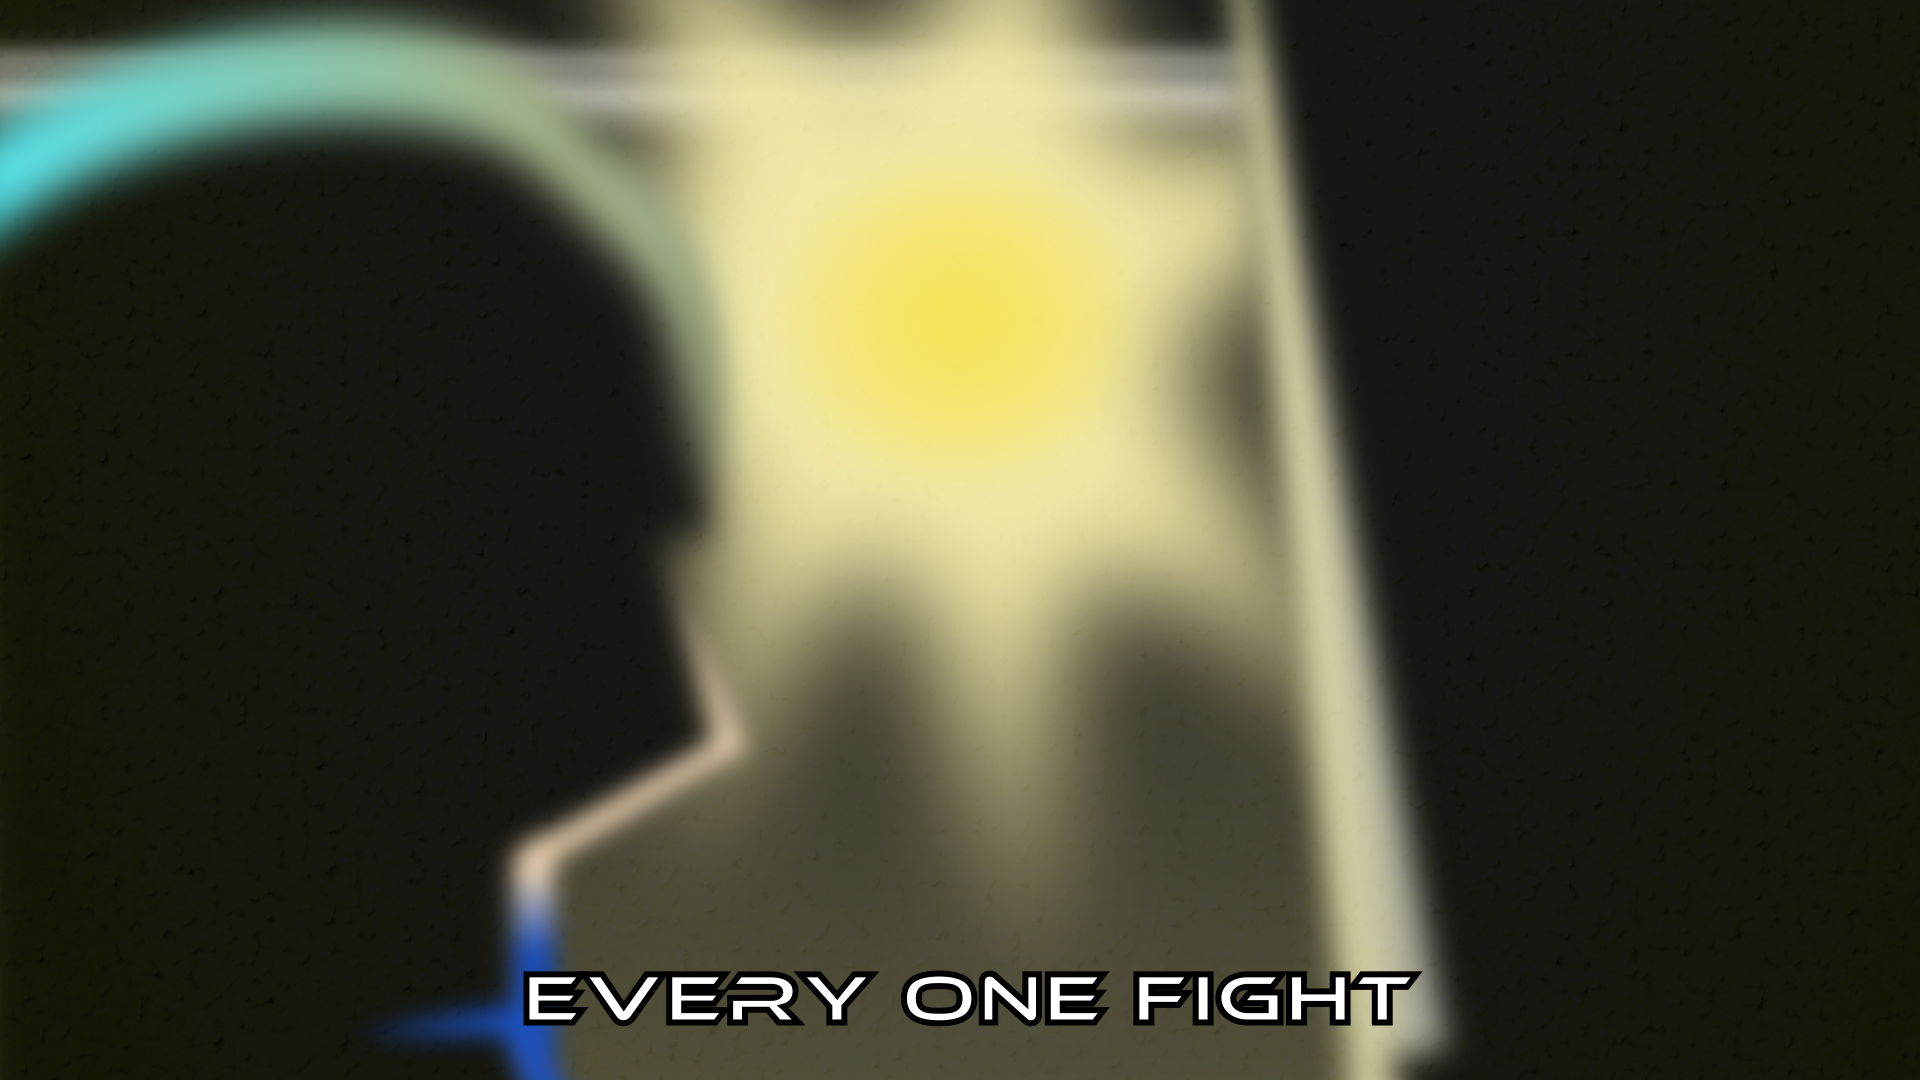 Every One Fight-wallpaper